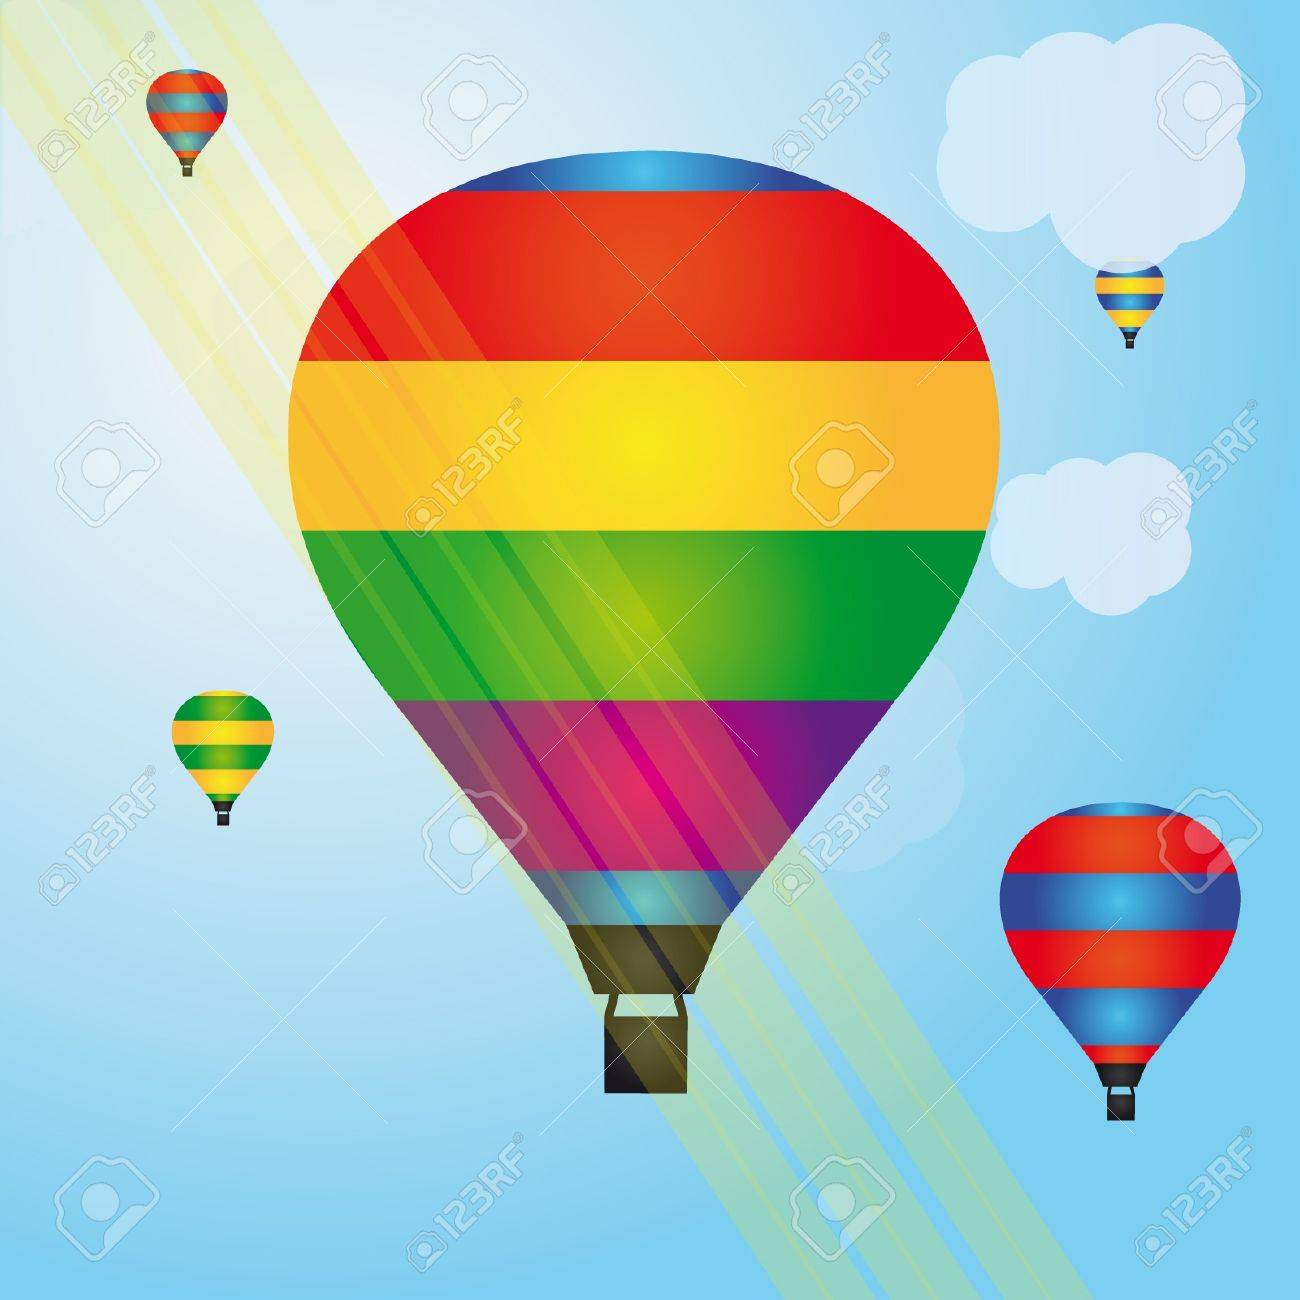 Colorful illustration of hot air balloons Stock Vector - 13435696